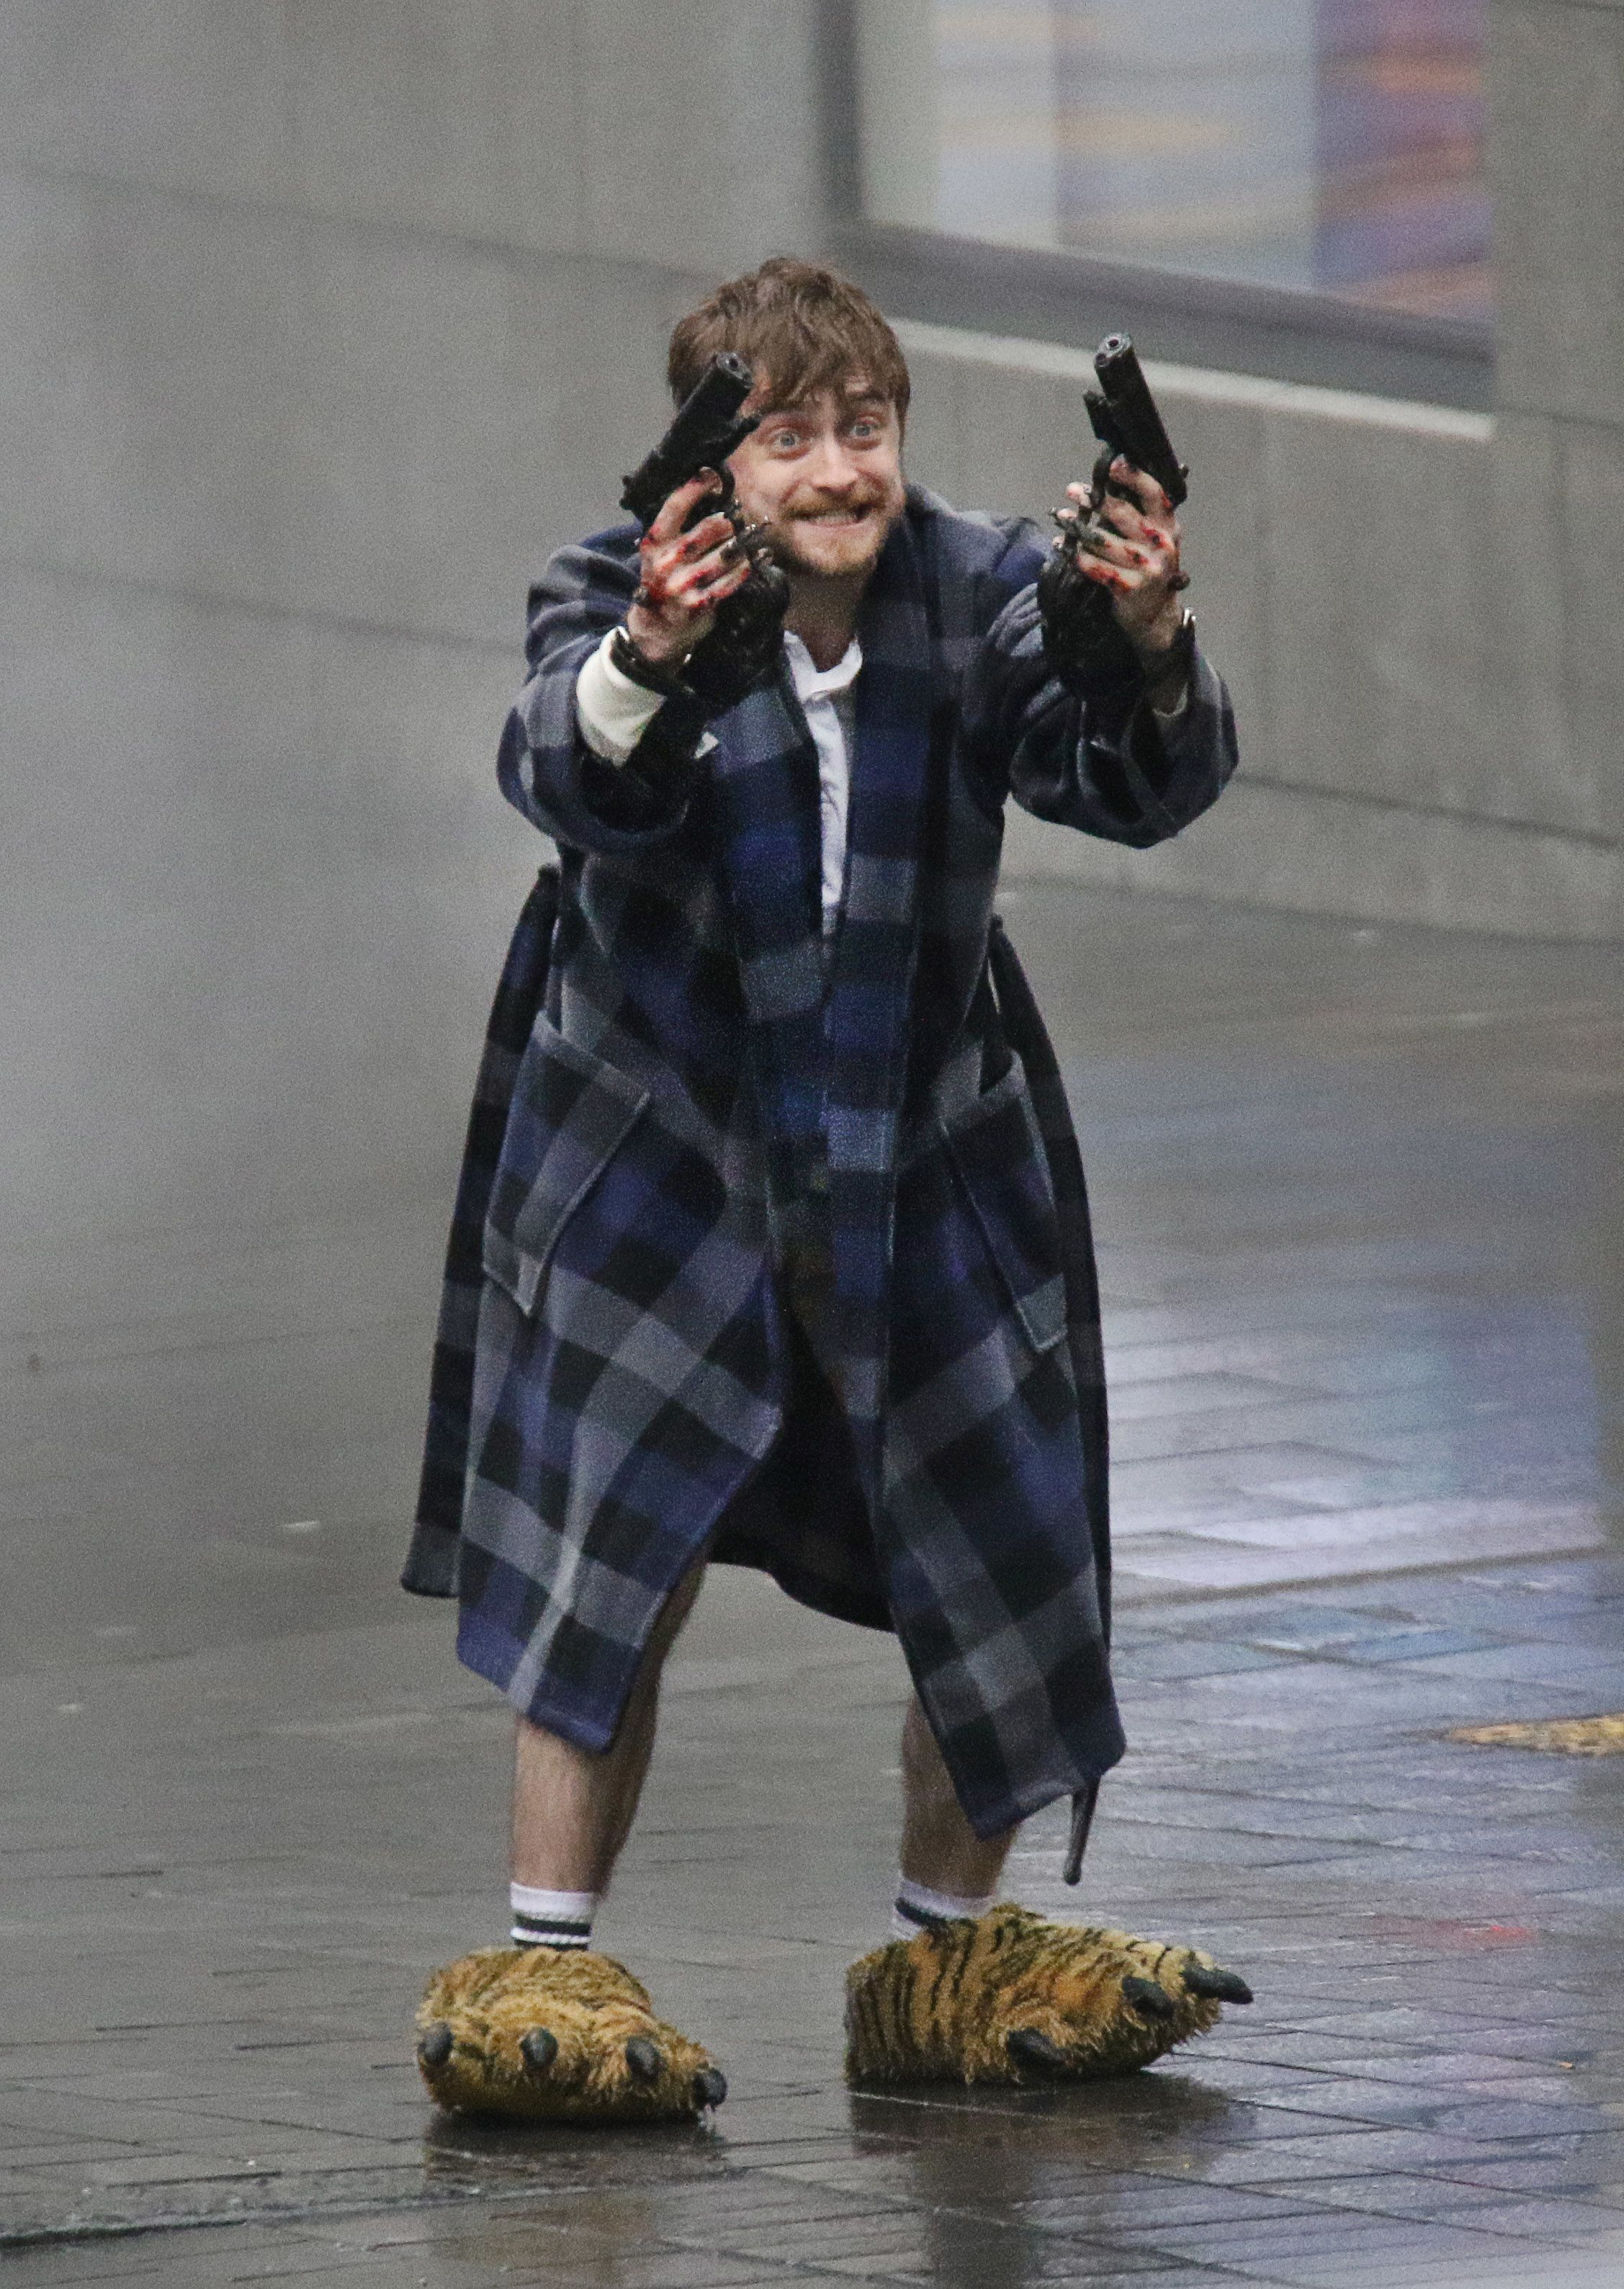 Photo Of Daniel Radcliffe Holding Guns In Crazy Slippers Becomes A Magical Meme Daniel Radcliffe Harry Potter Funny Daniel Radcliffe Harry Potter